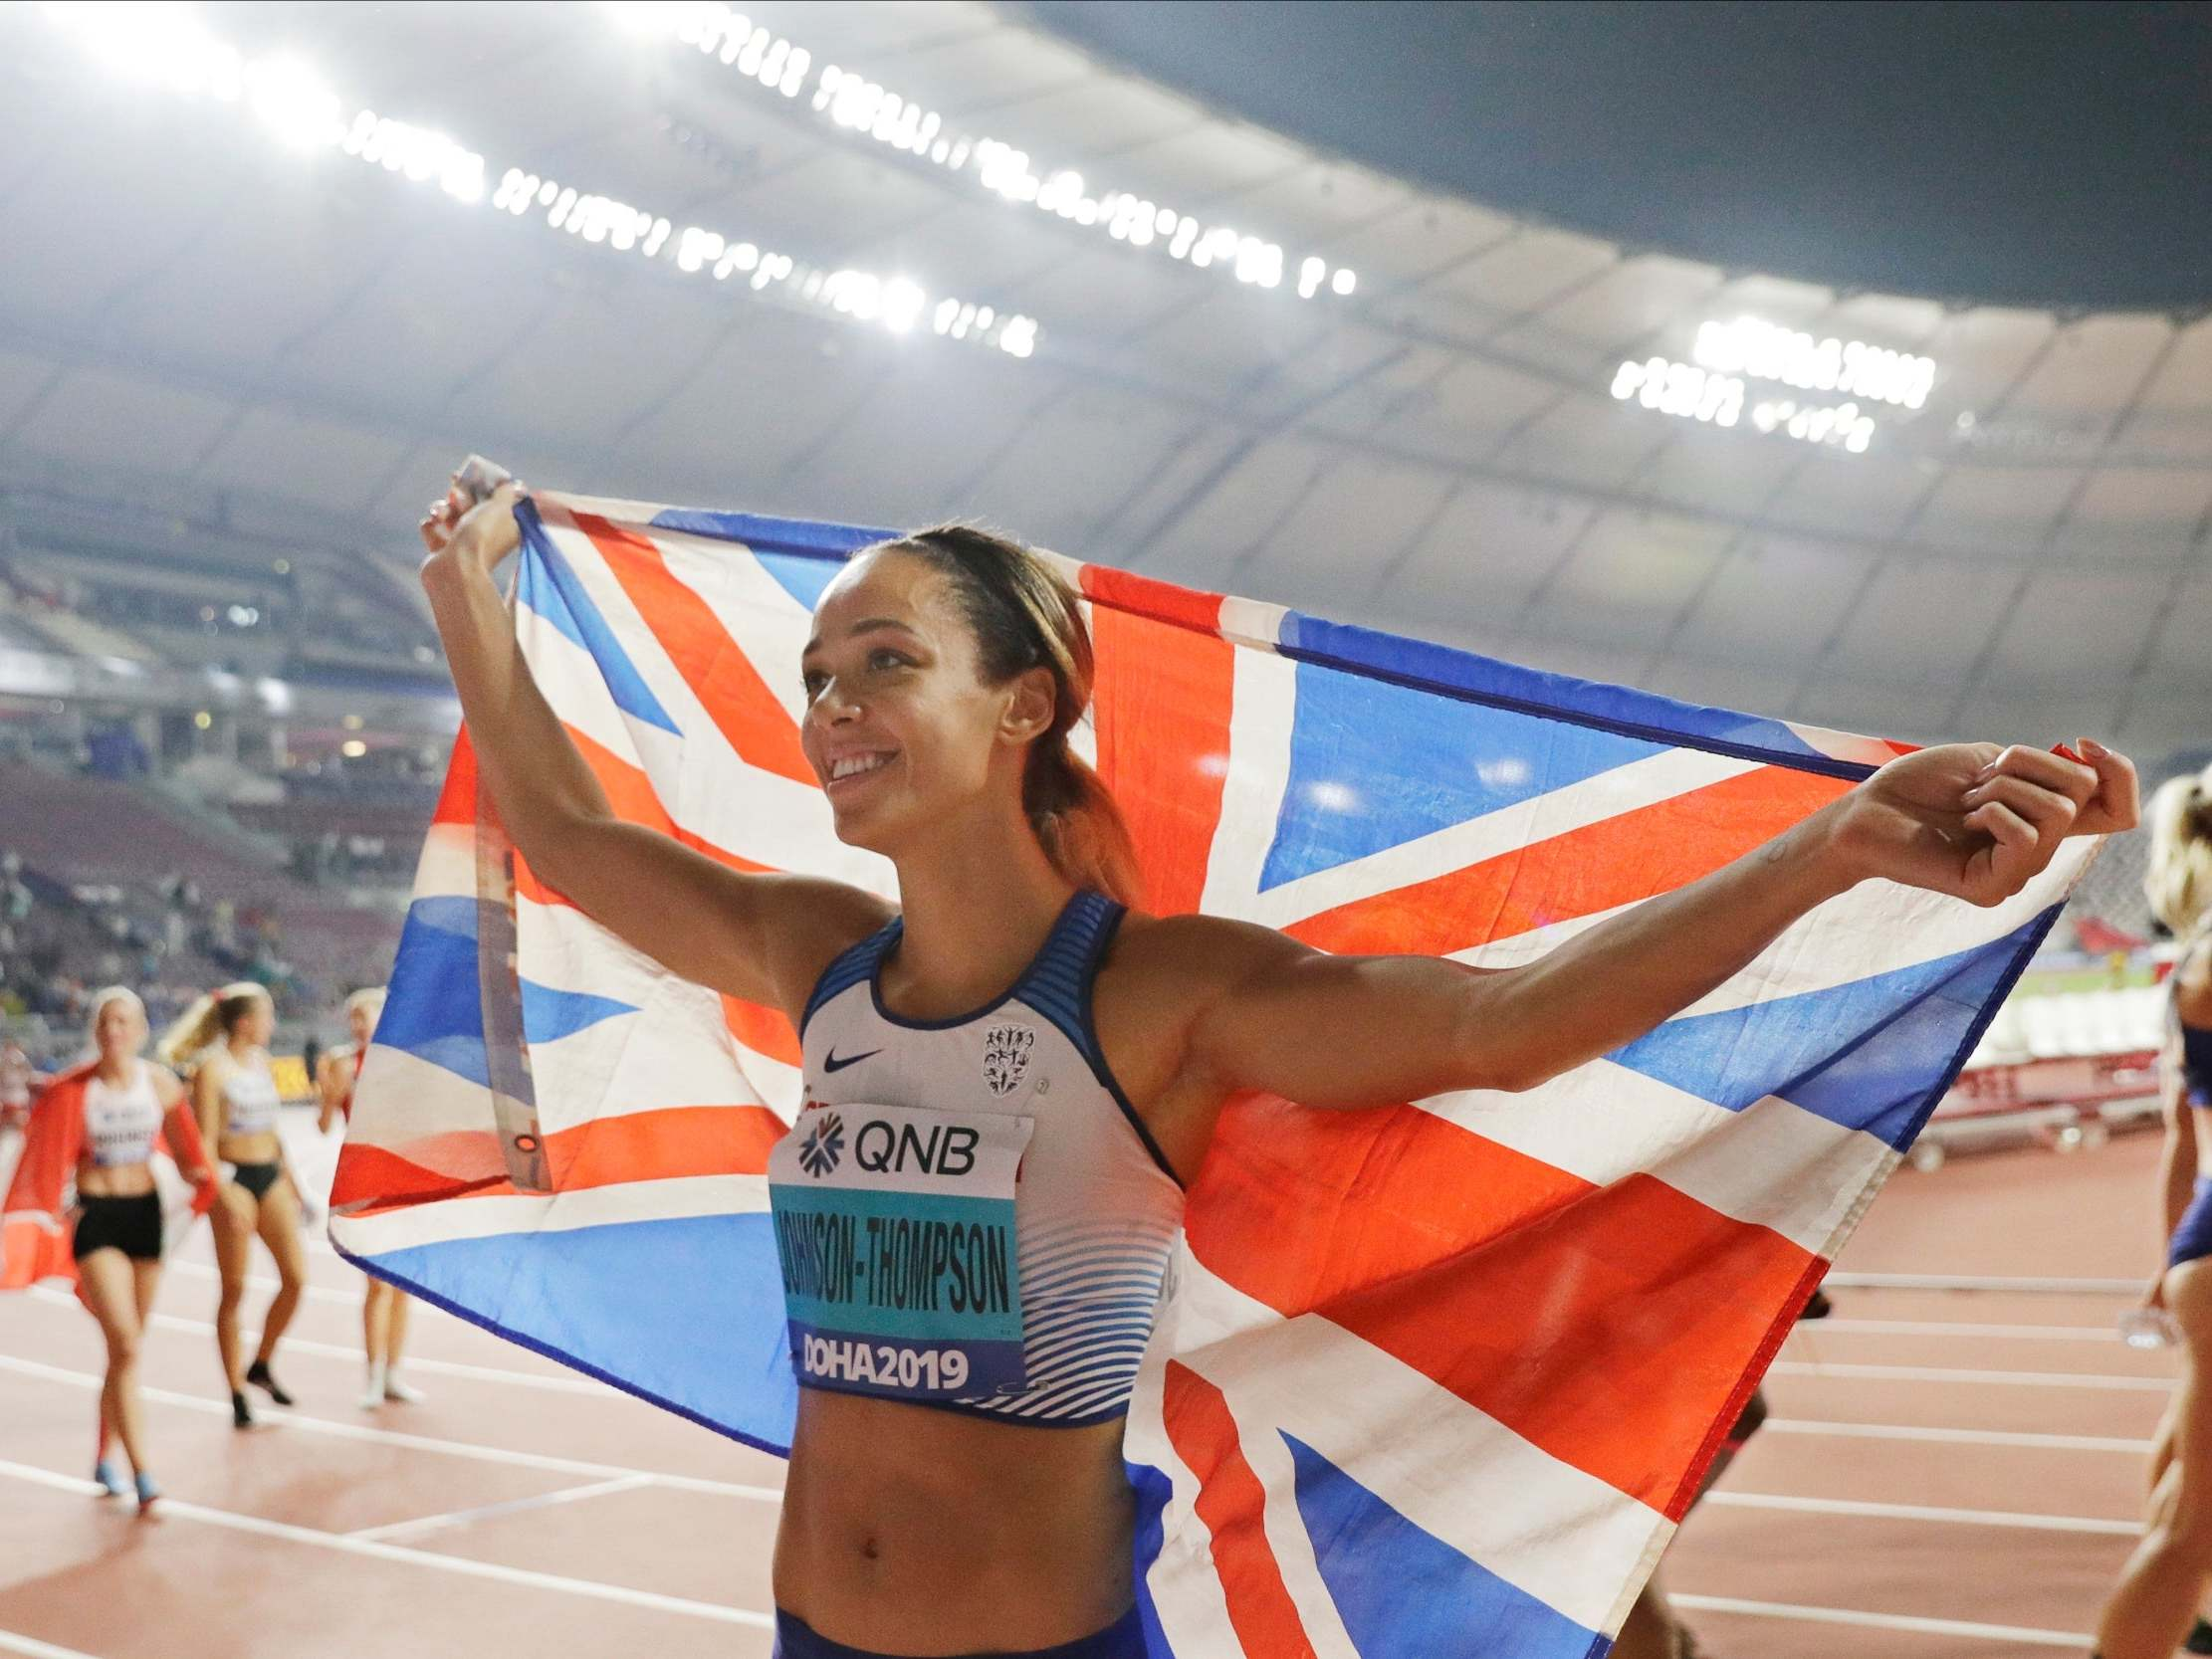 Johnson-Thompson speaks about Tokyo Olympics chances after world title